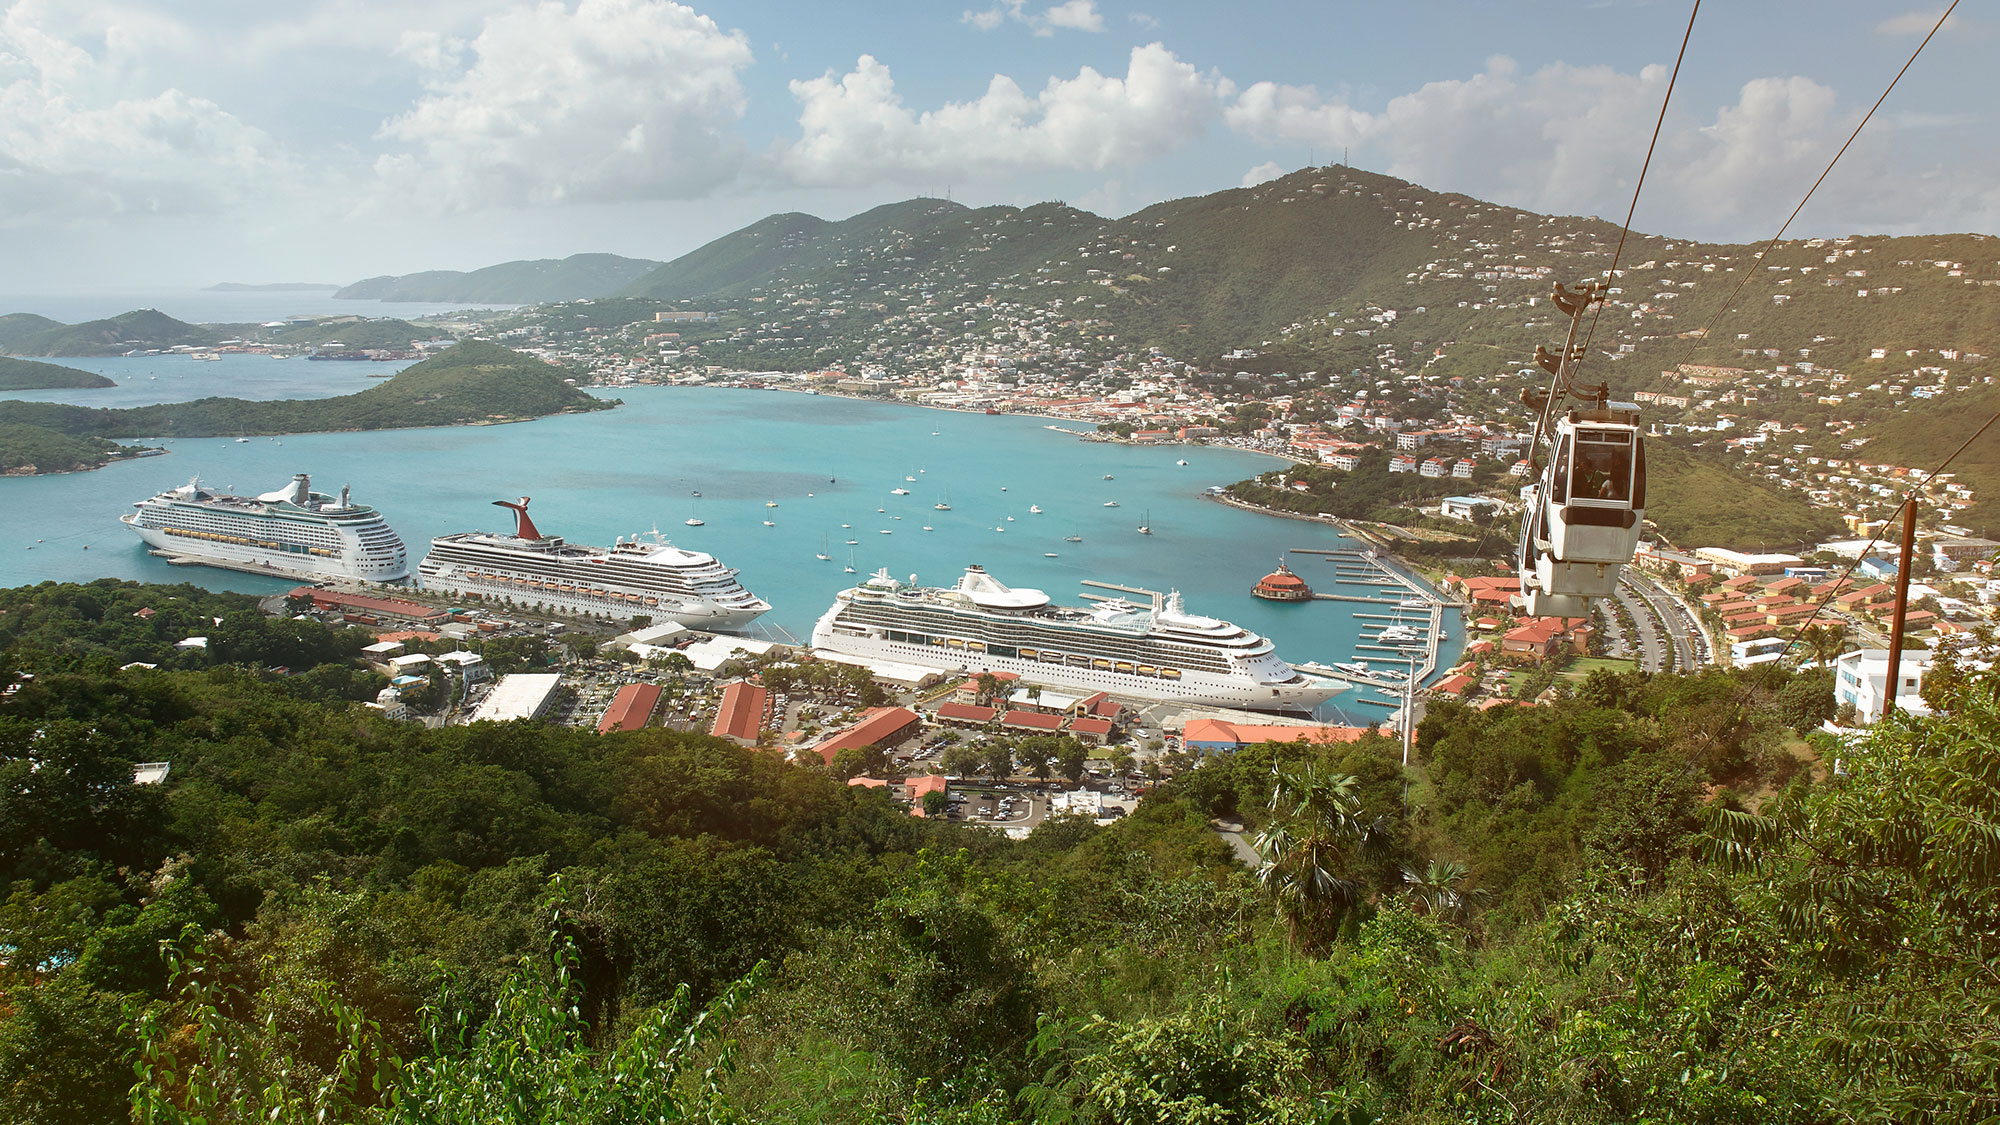 St. Thomas cruise port